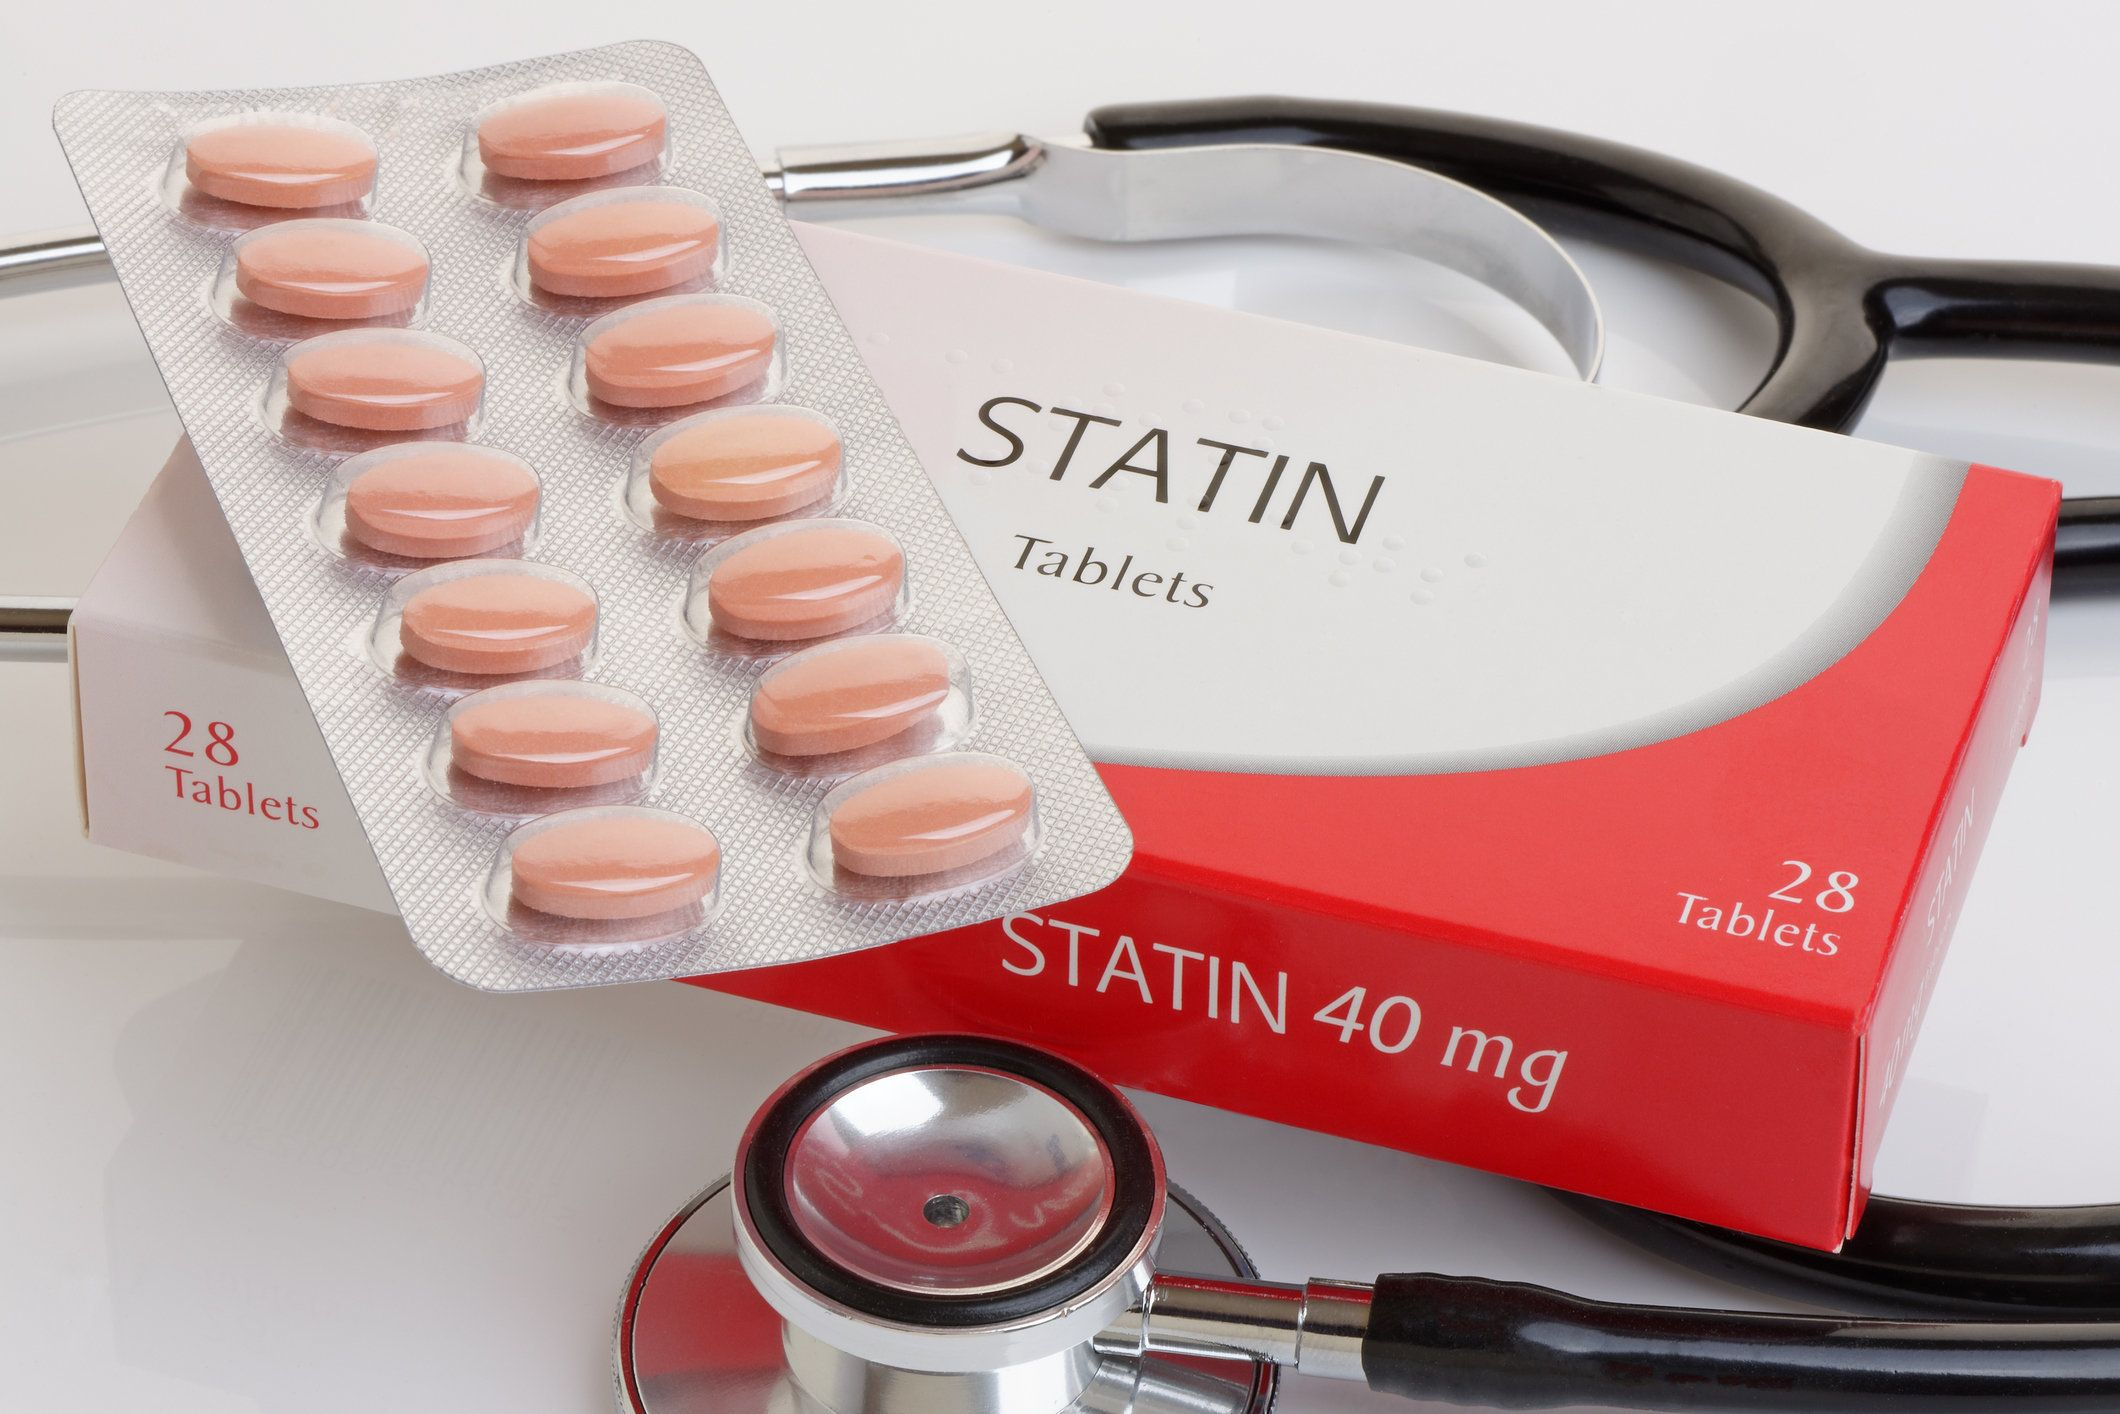 Statins Are Safe And Negative Side Effects Have Been Overstated, Medical Review